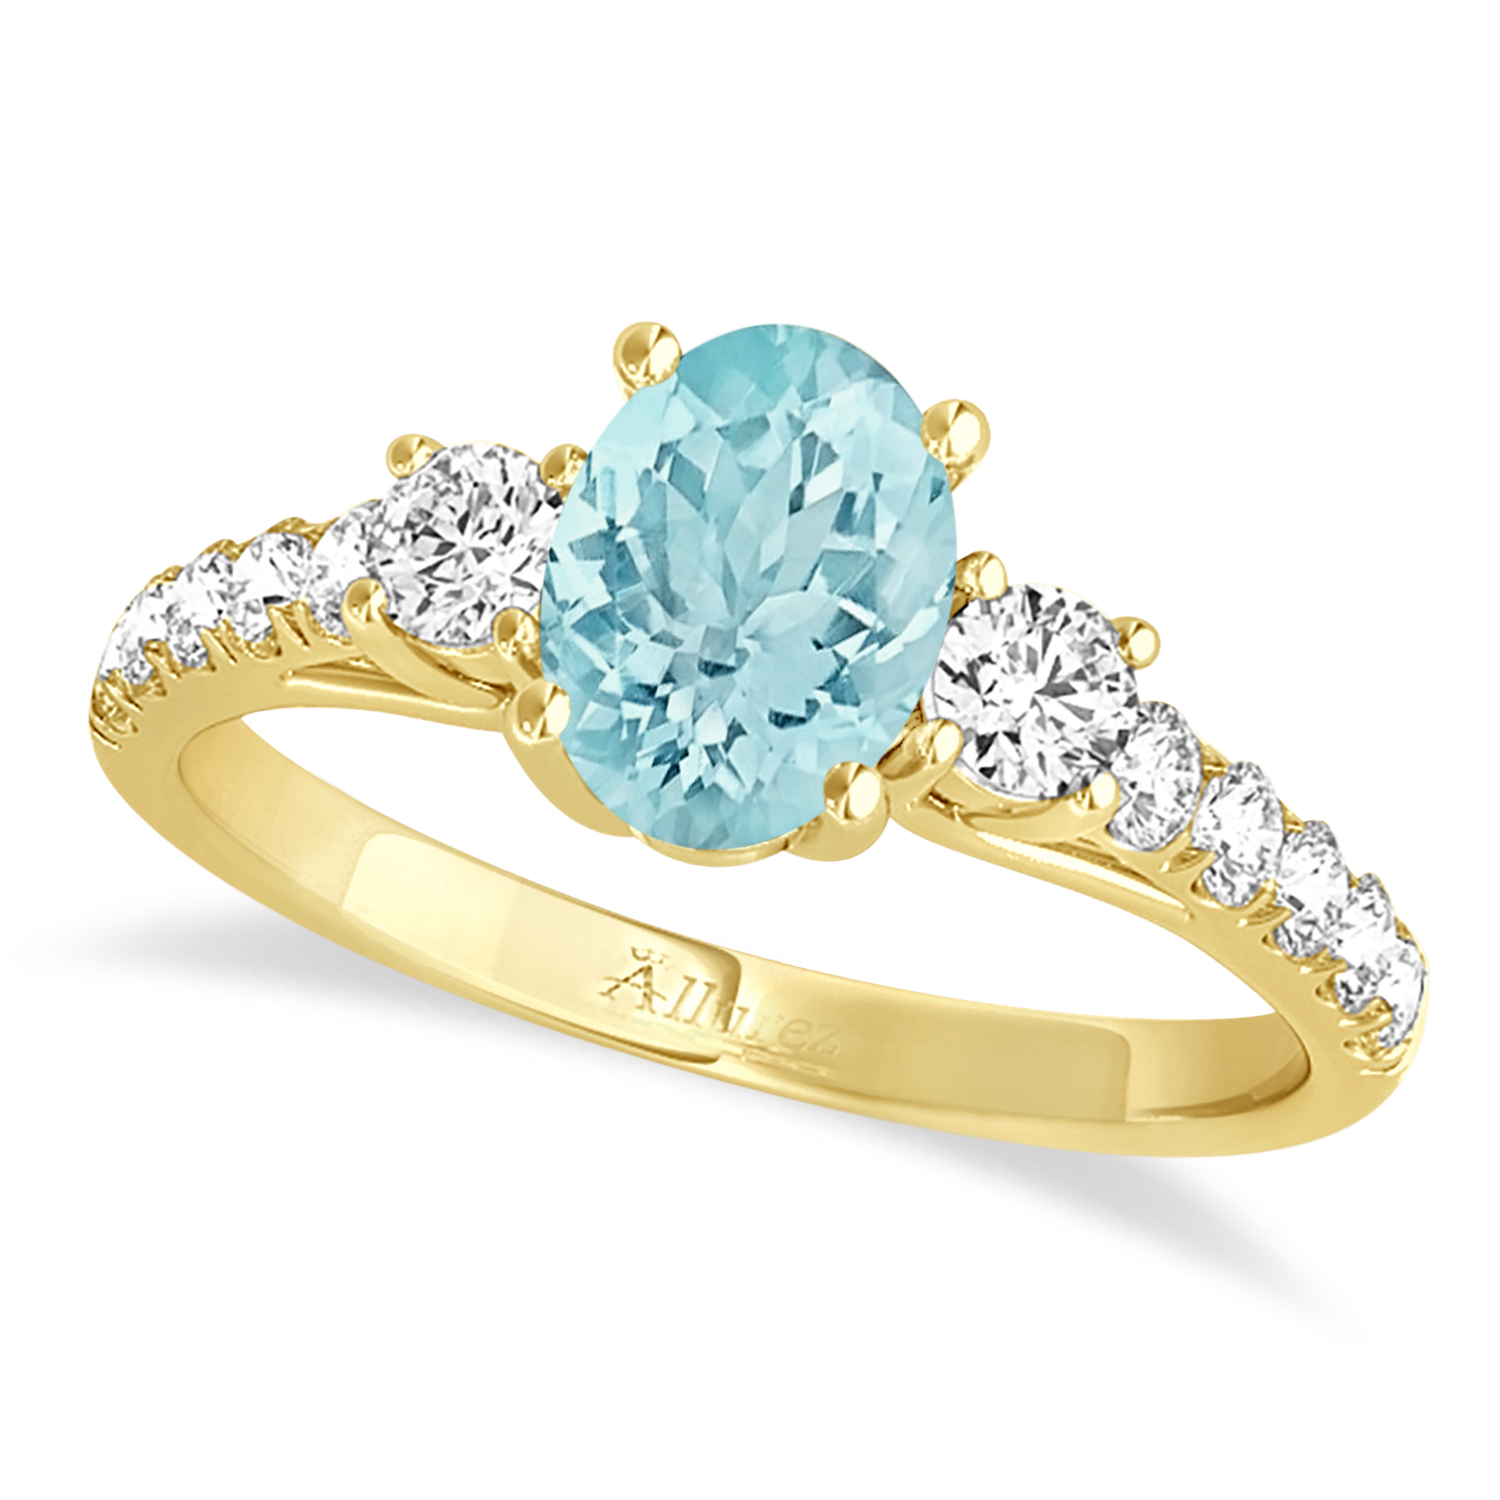 Oval Cut Aquamarine & Diamond Engagement Ring 14k Yellow